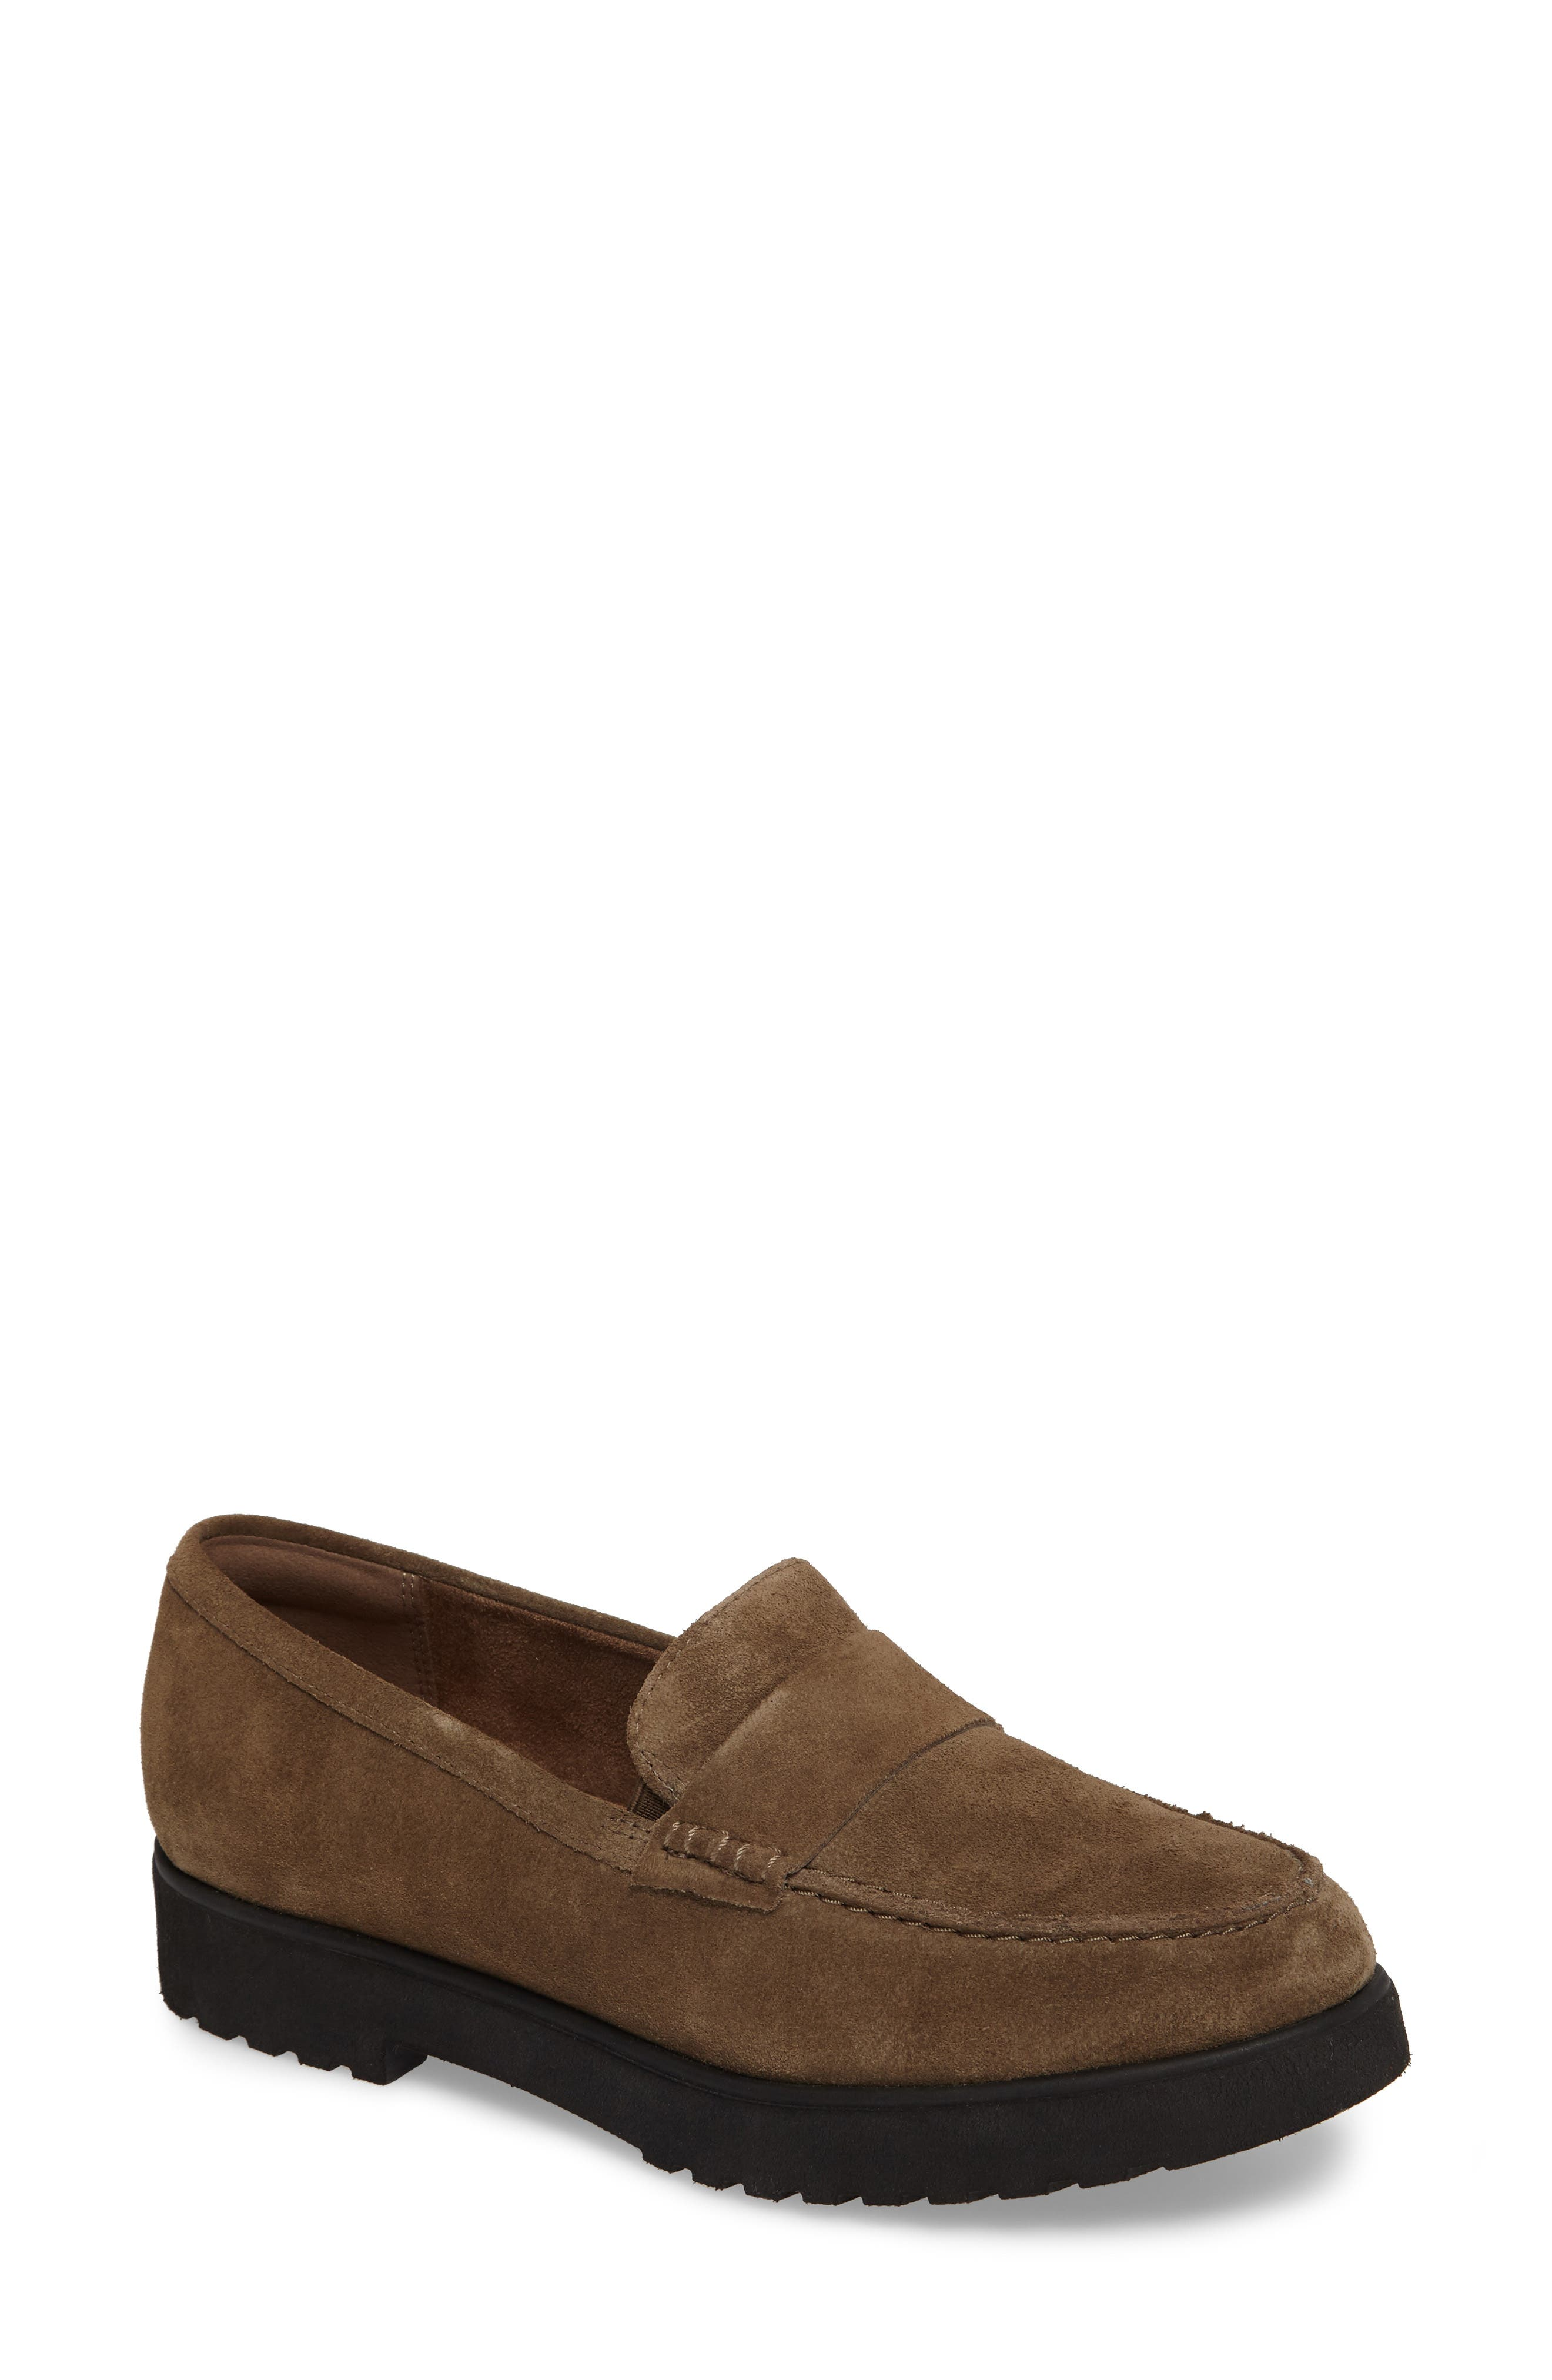 Clarks® Bellevue Hazen Loafer (Women)